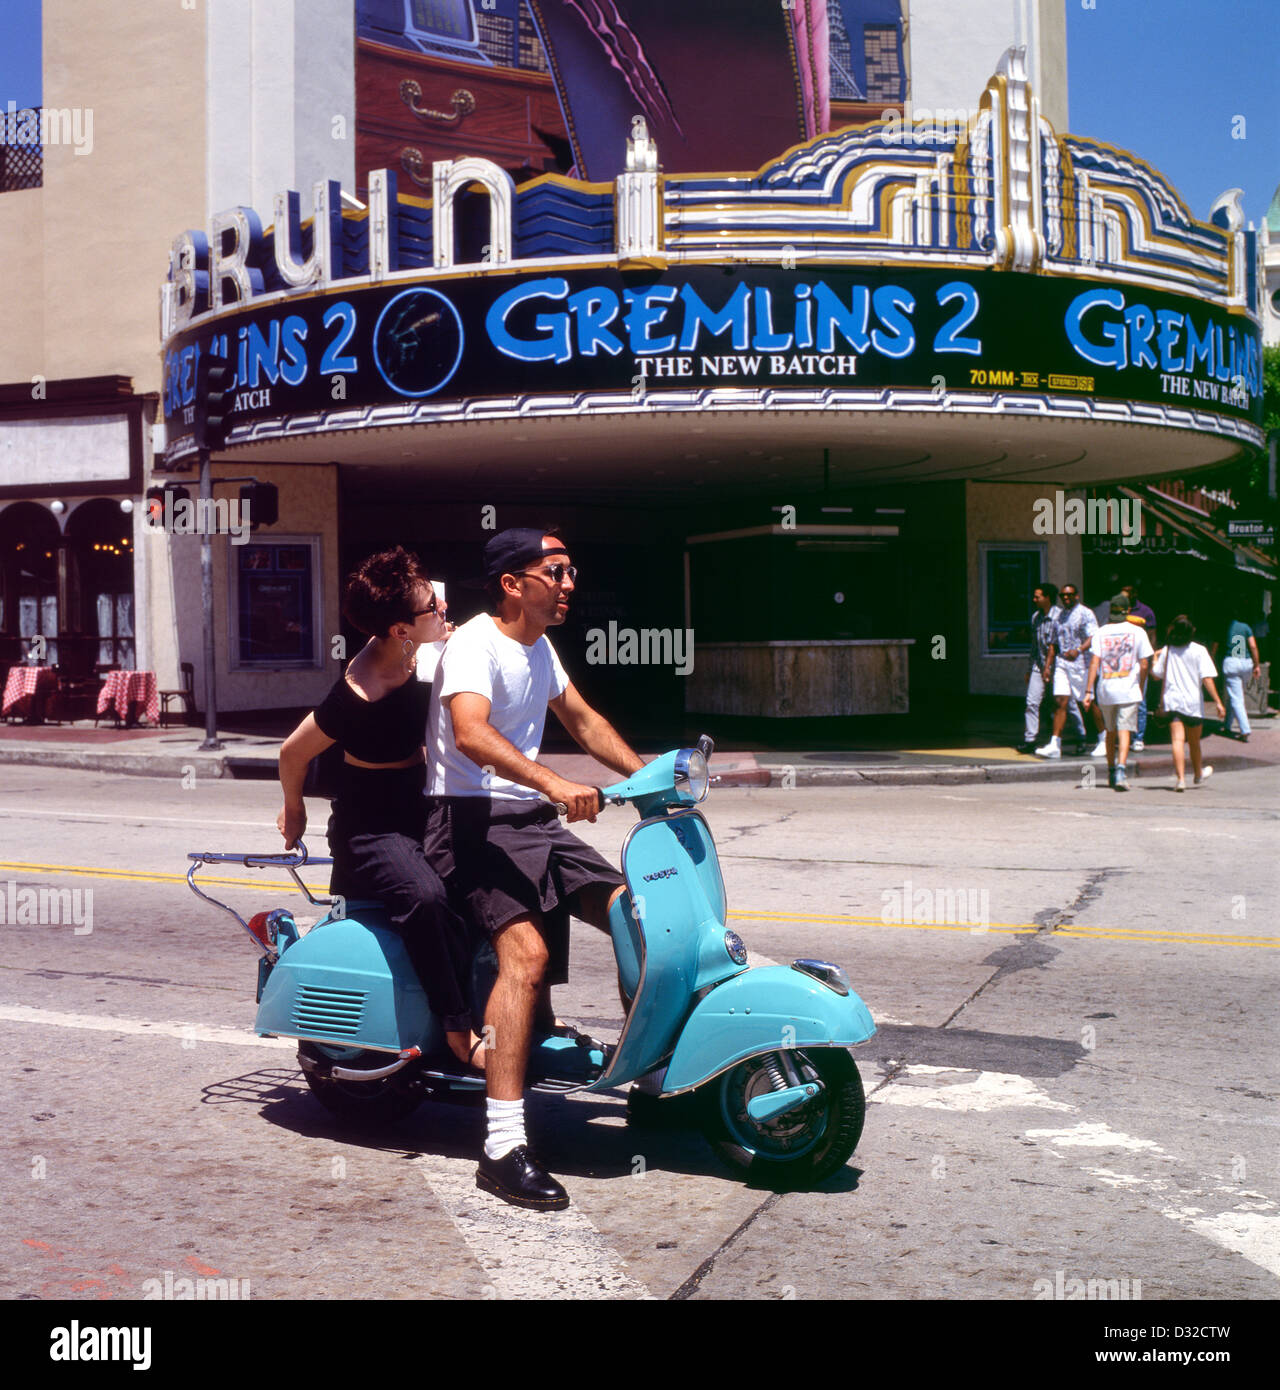 Couple on a motor scooter driving past Gremlins 2 Movie at the Bruin Westwood Theatre Los Angeles, California 1990 - Stock Image